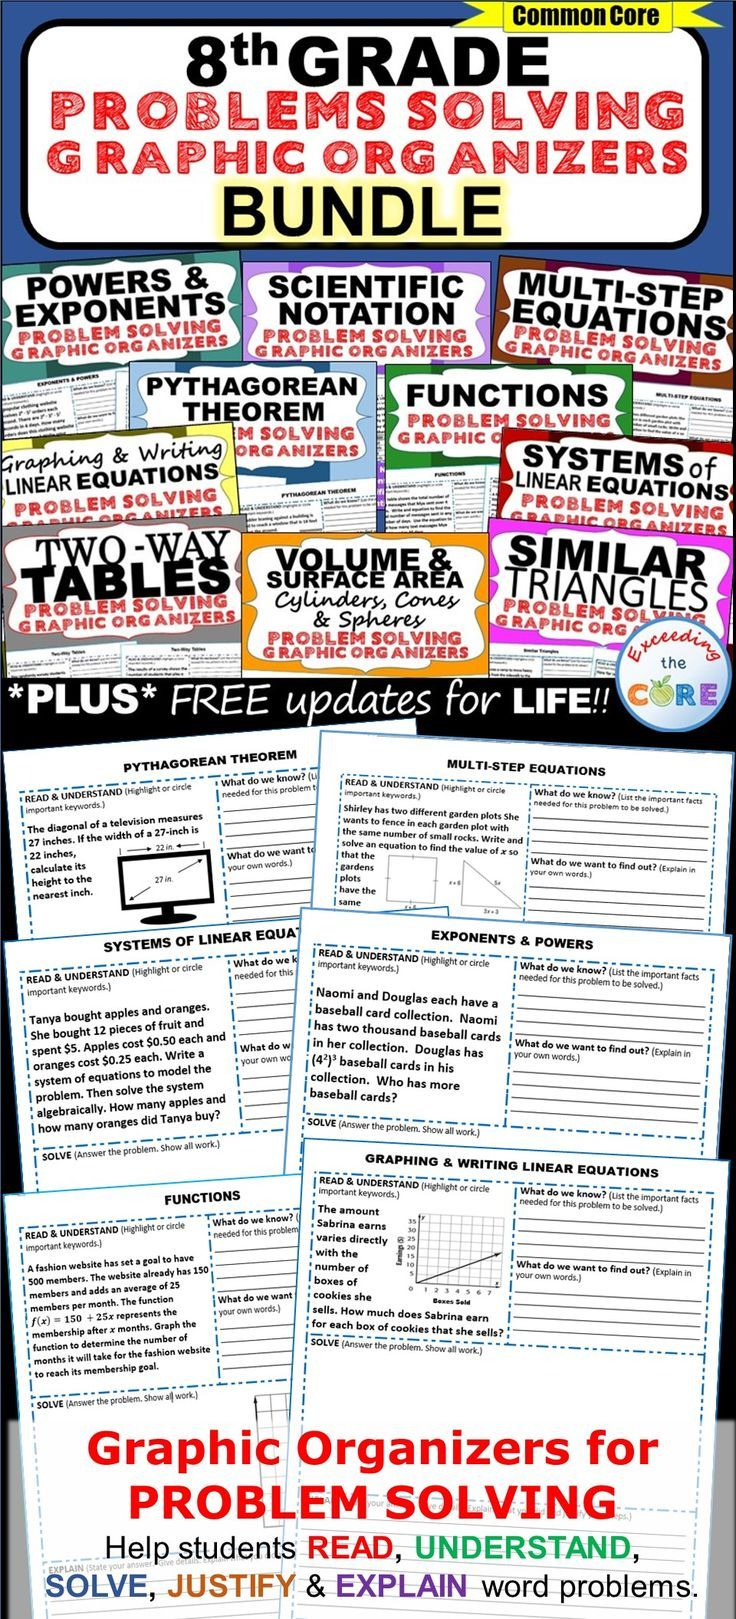 8th Grade Math Common Core WORD PROBLEMS with Graphic Organizer BUNDLE. Includes 10 sets (100 problems) of word PROBLEMS. Students must solve & explain using problem-solving strategies.  Pythagorean Theorem, Scientific Notation, Powers & Exponents, Multi-Step Equations, Graphing & Writing Linear Equations, System of Linear Equations, Functions, Volume & Surface Area of Cylinders, Cones & Spheres, Similar Triangles & Indirect Measurement ✔️ Two-Way Tables 8th grade math  8.F, 8.EE